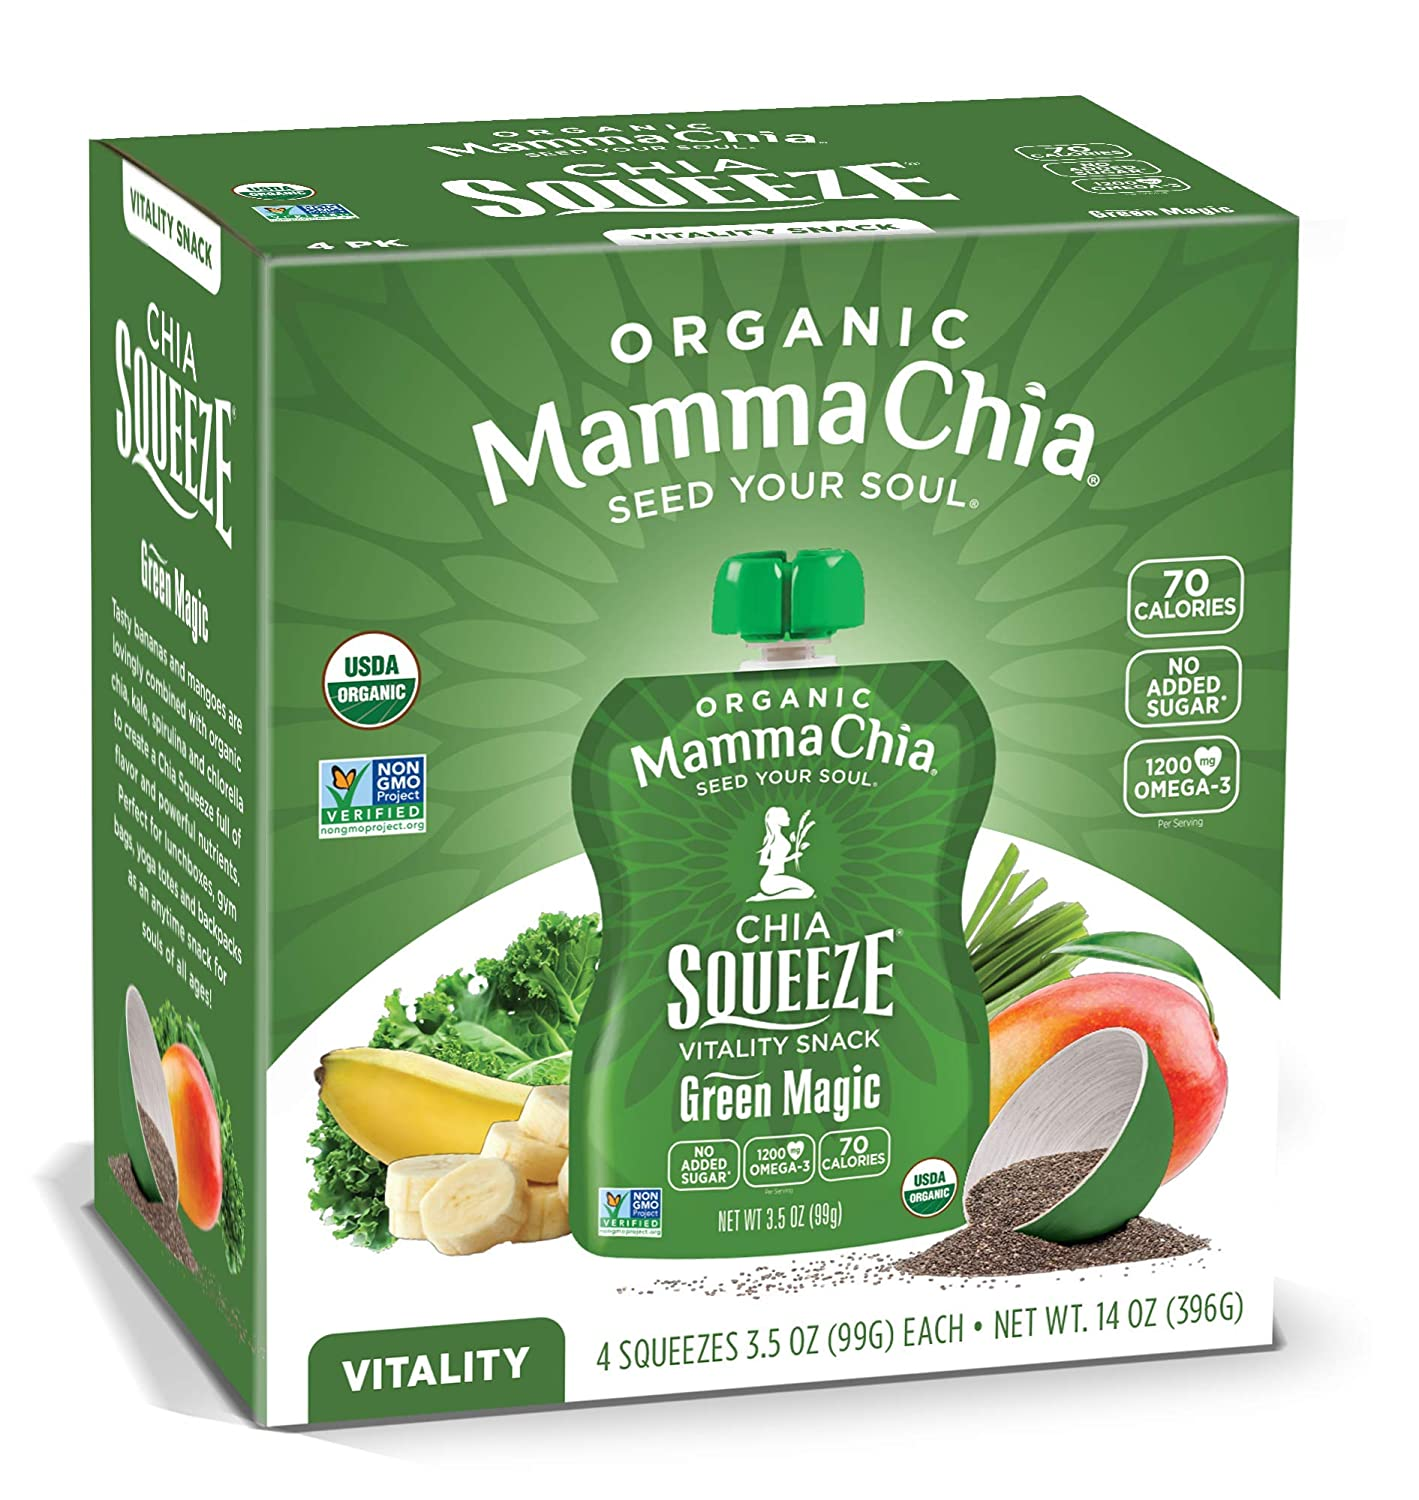 Mamma Chia Organic Vitality Squeeze Snack, Green Magic, 4 Count (Pack of 6)